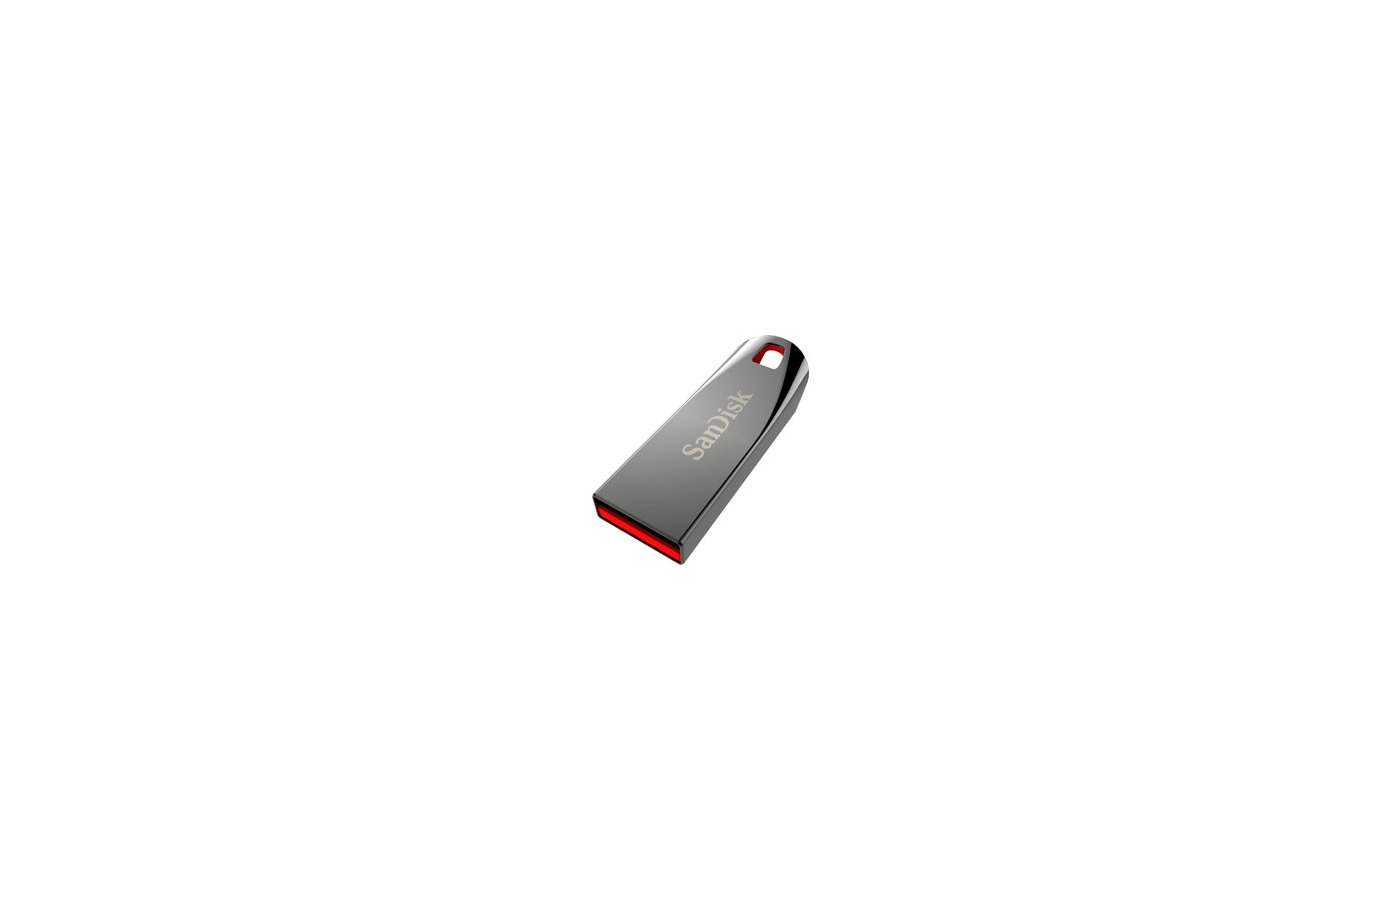 Флеш-диск USB 2.0 Sandisk 64Gb Cruzer Force SDCZ71-064G-B35 серебристый